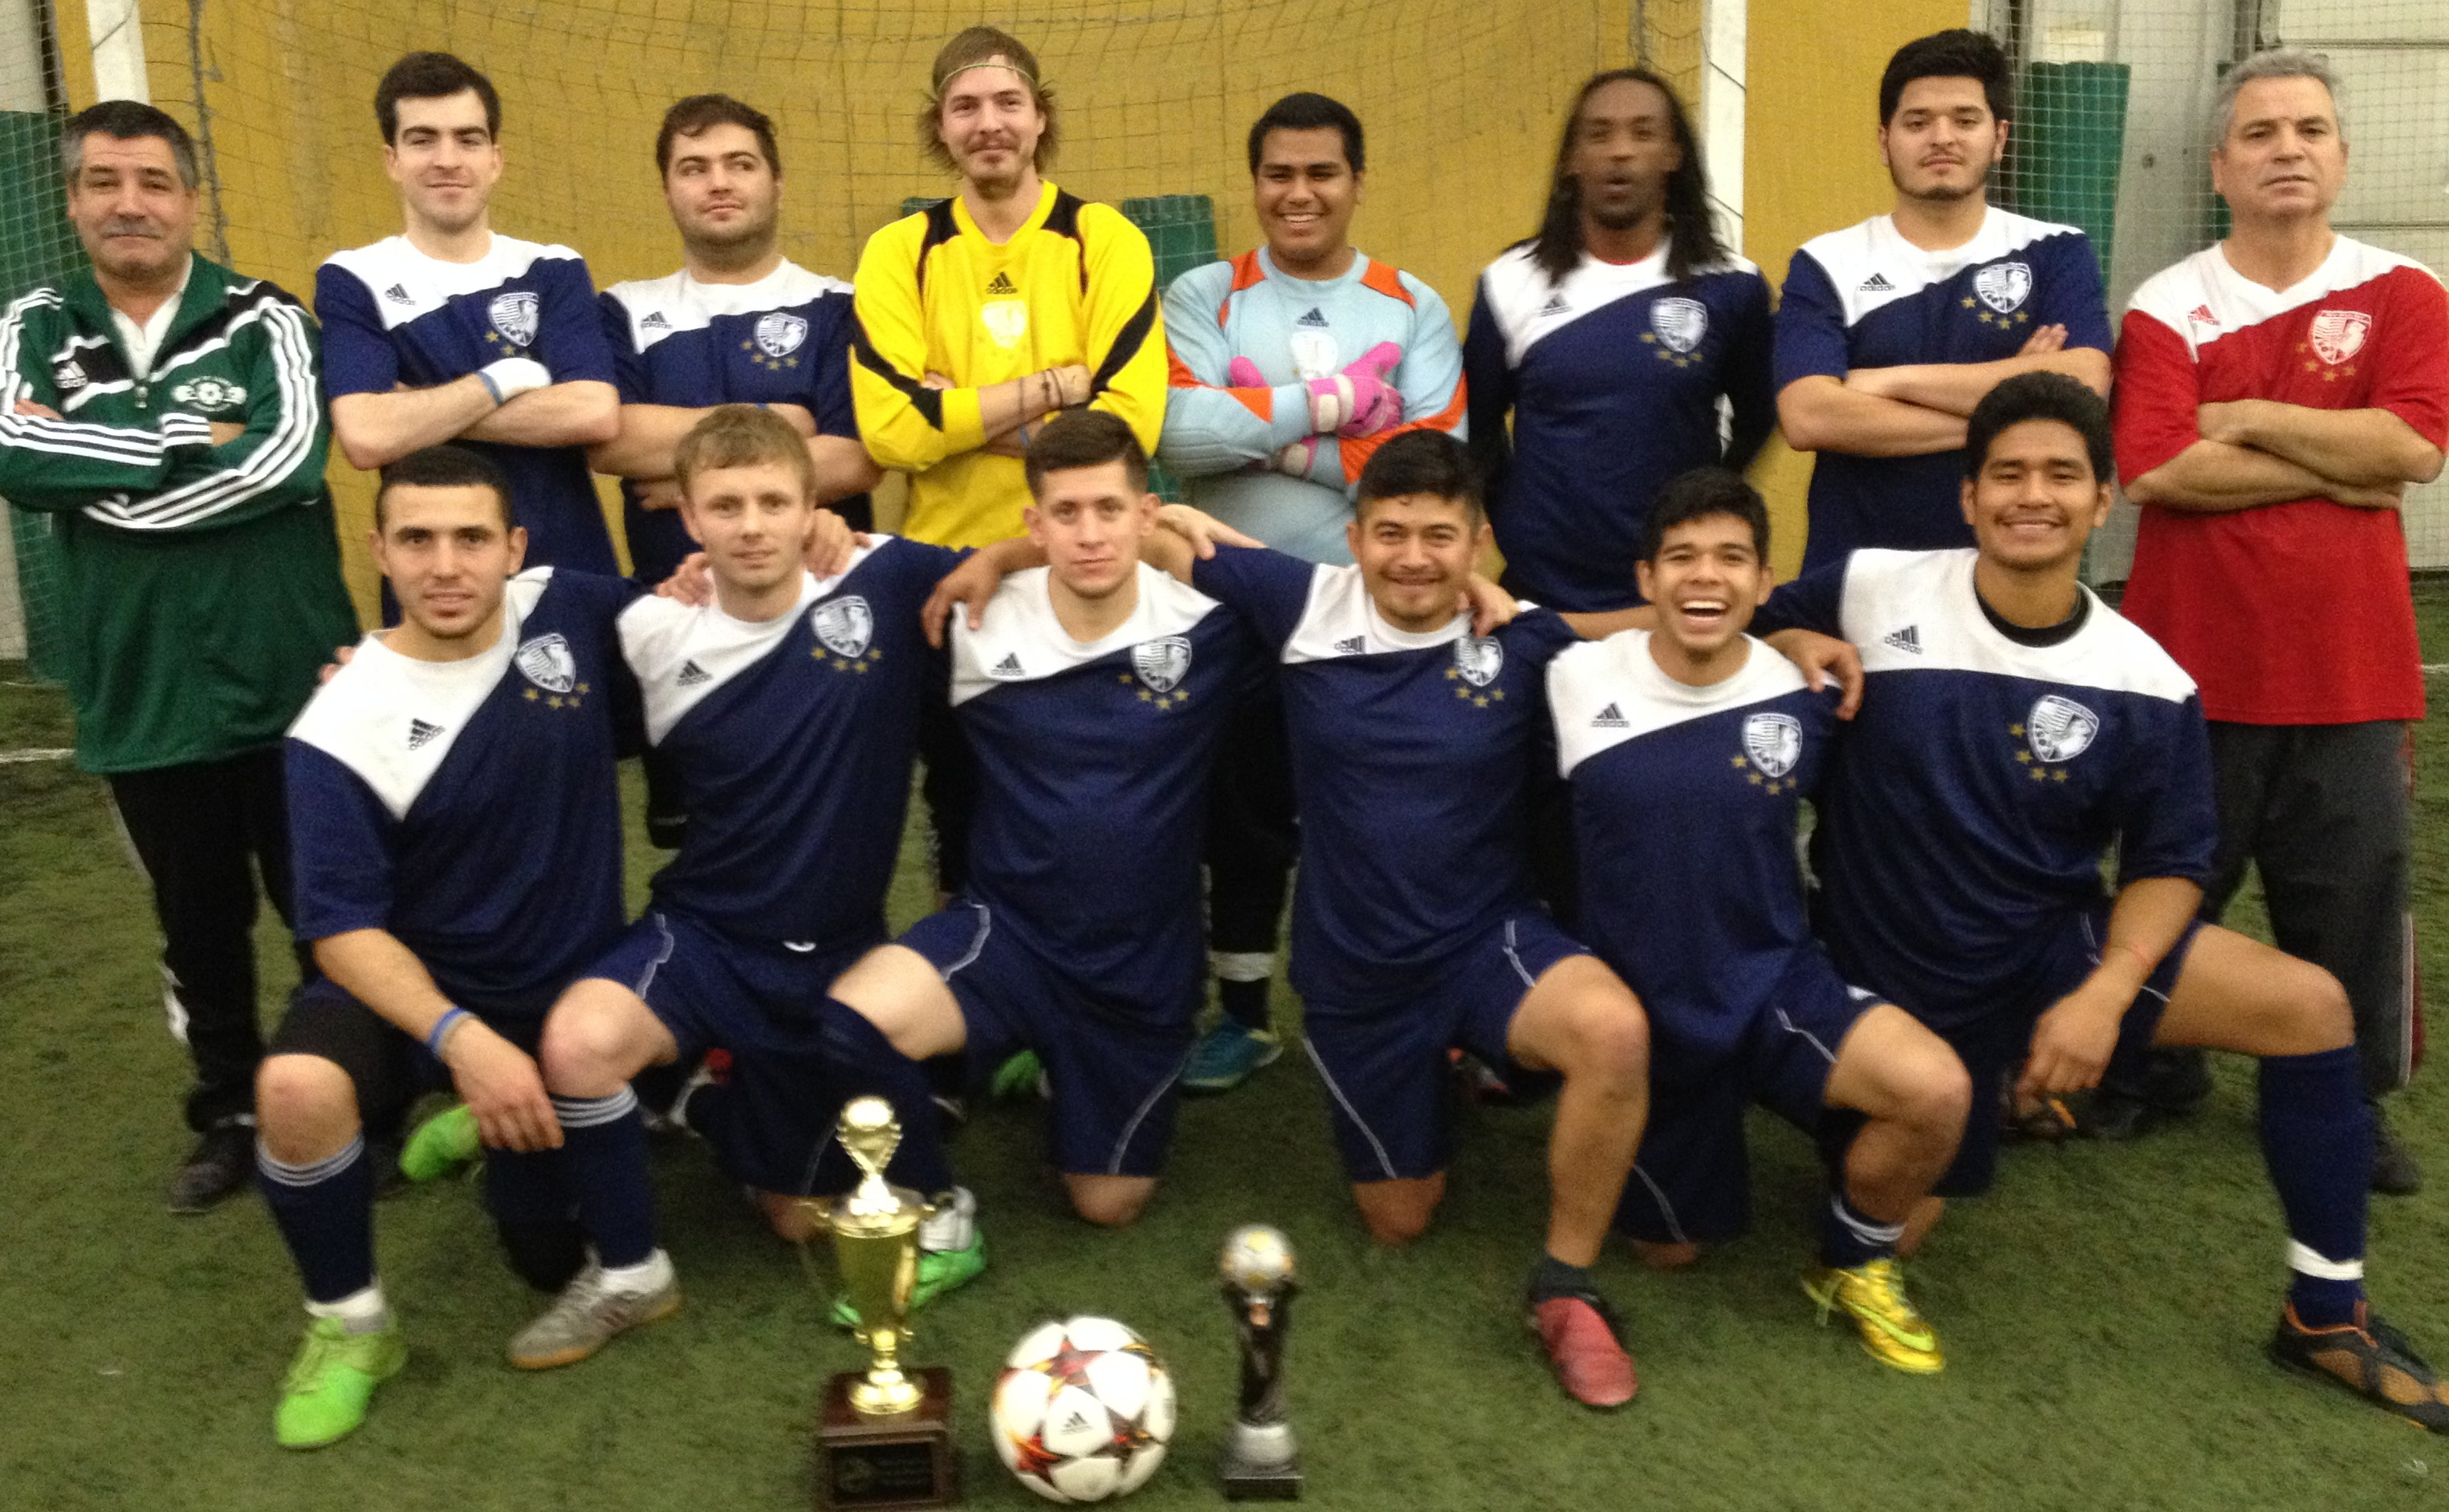 New Jersey Deaf Soccer